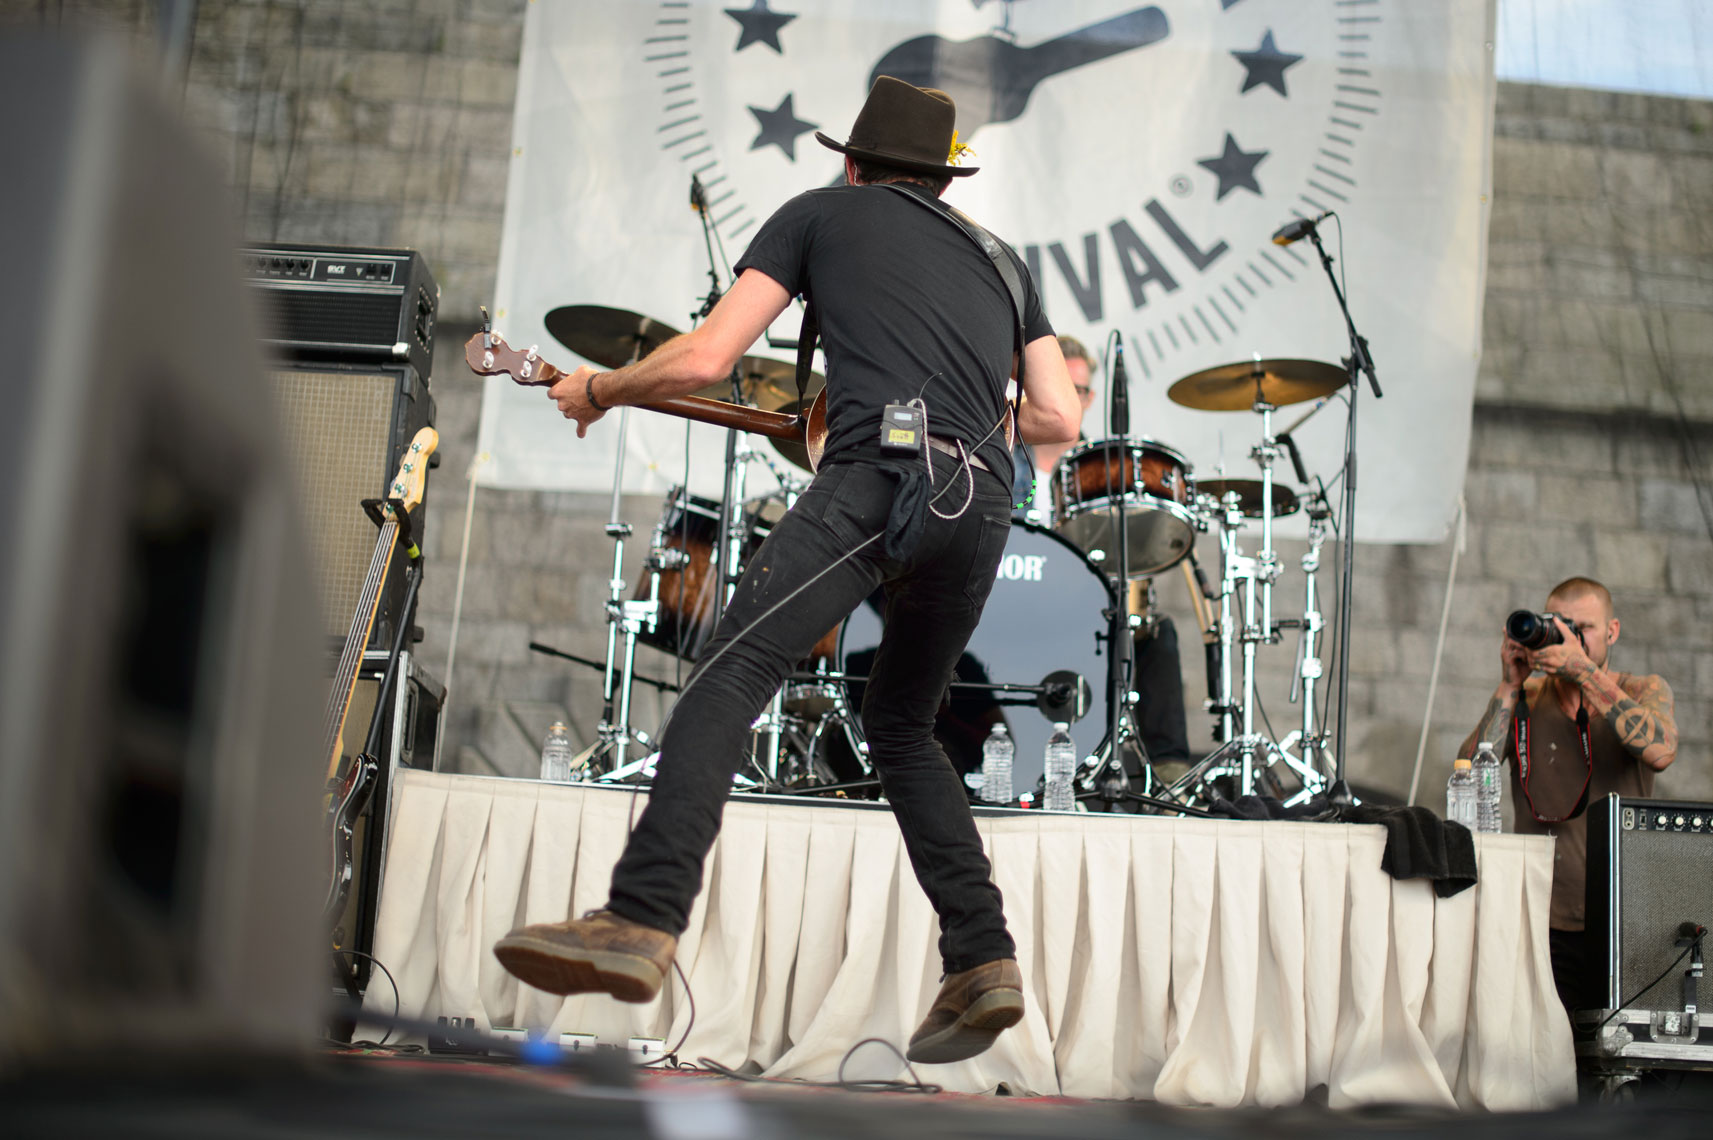 The-Avett-Brothers-performs-at-the-2013-Newport-Folk-Festival-2